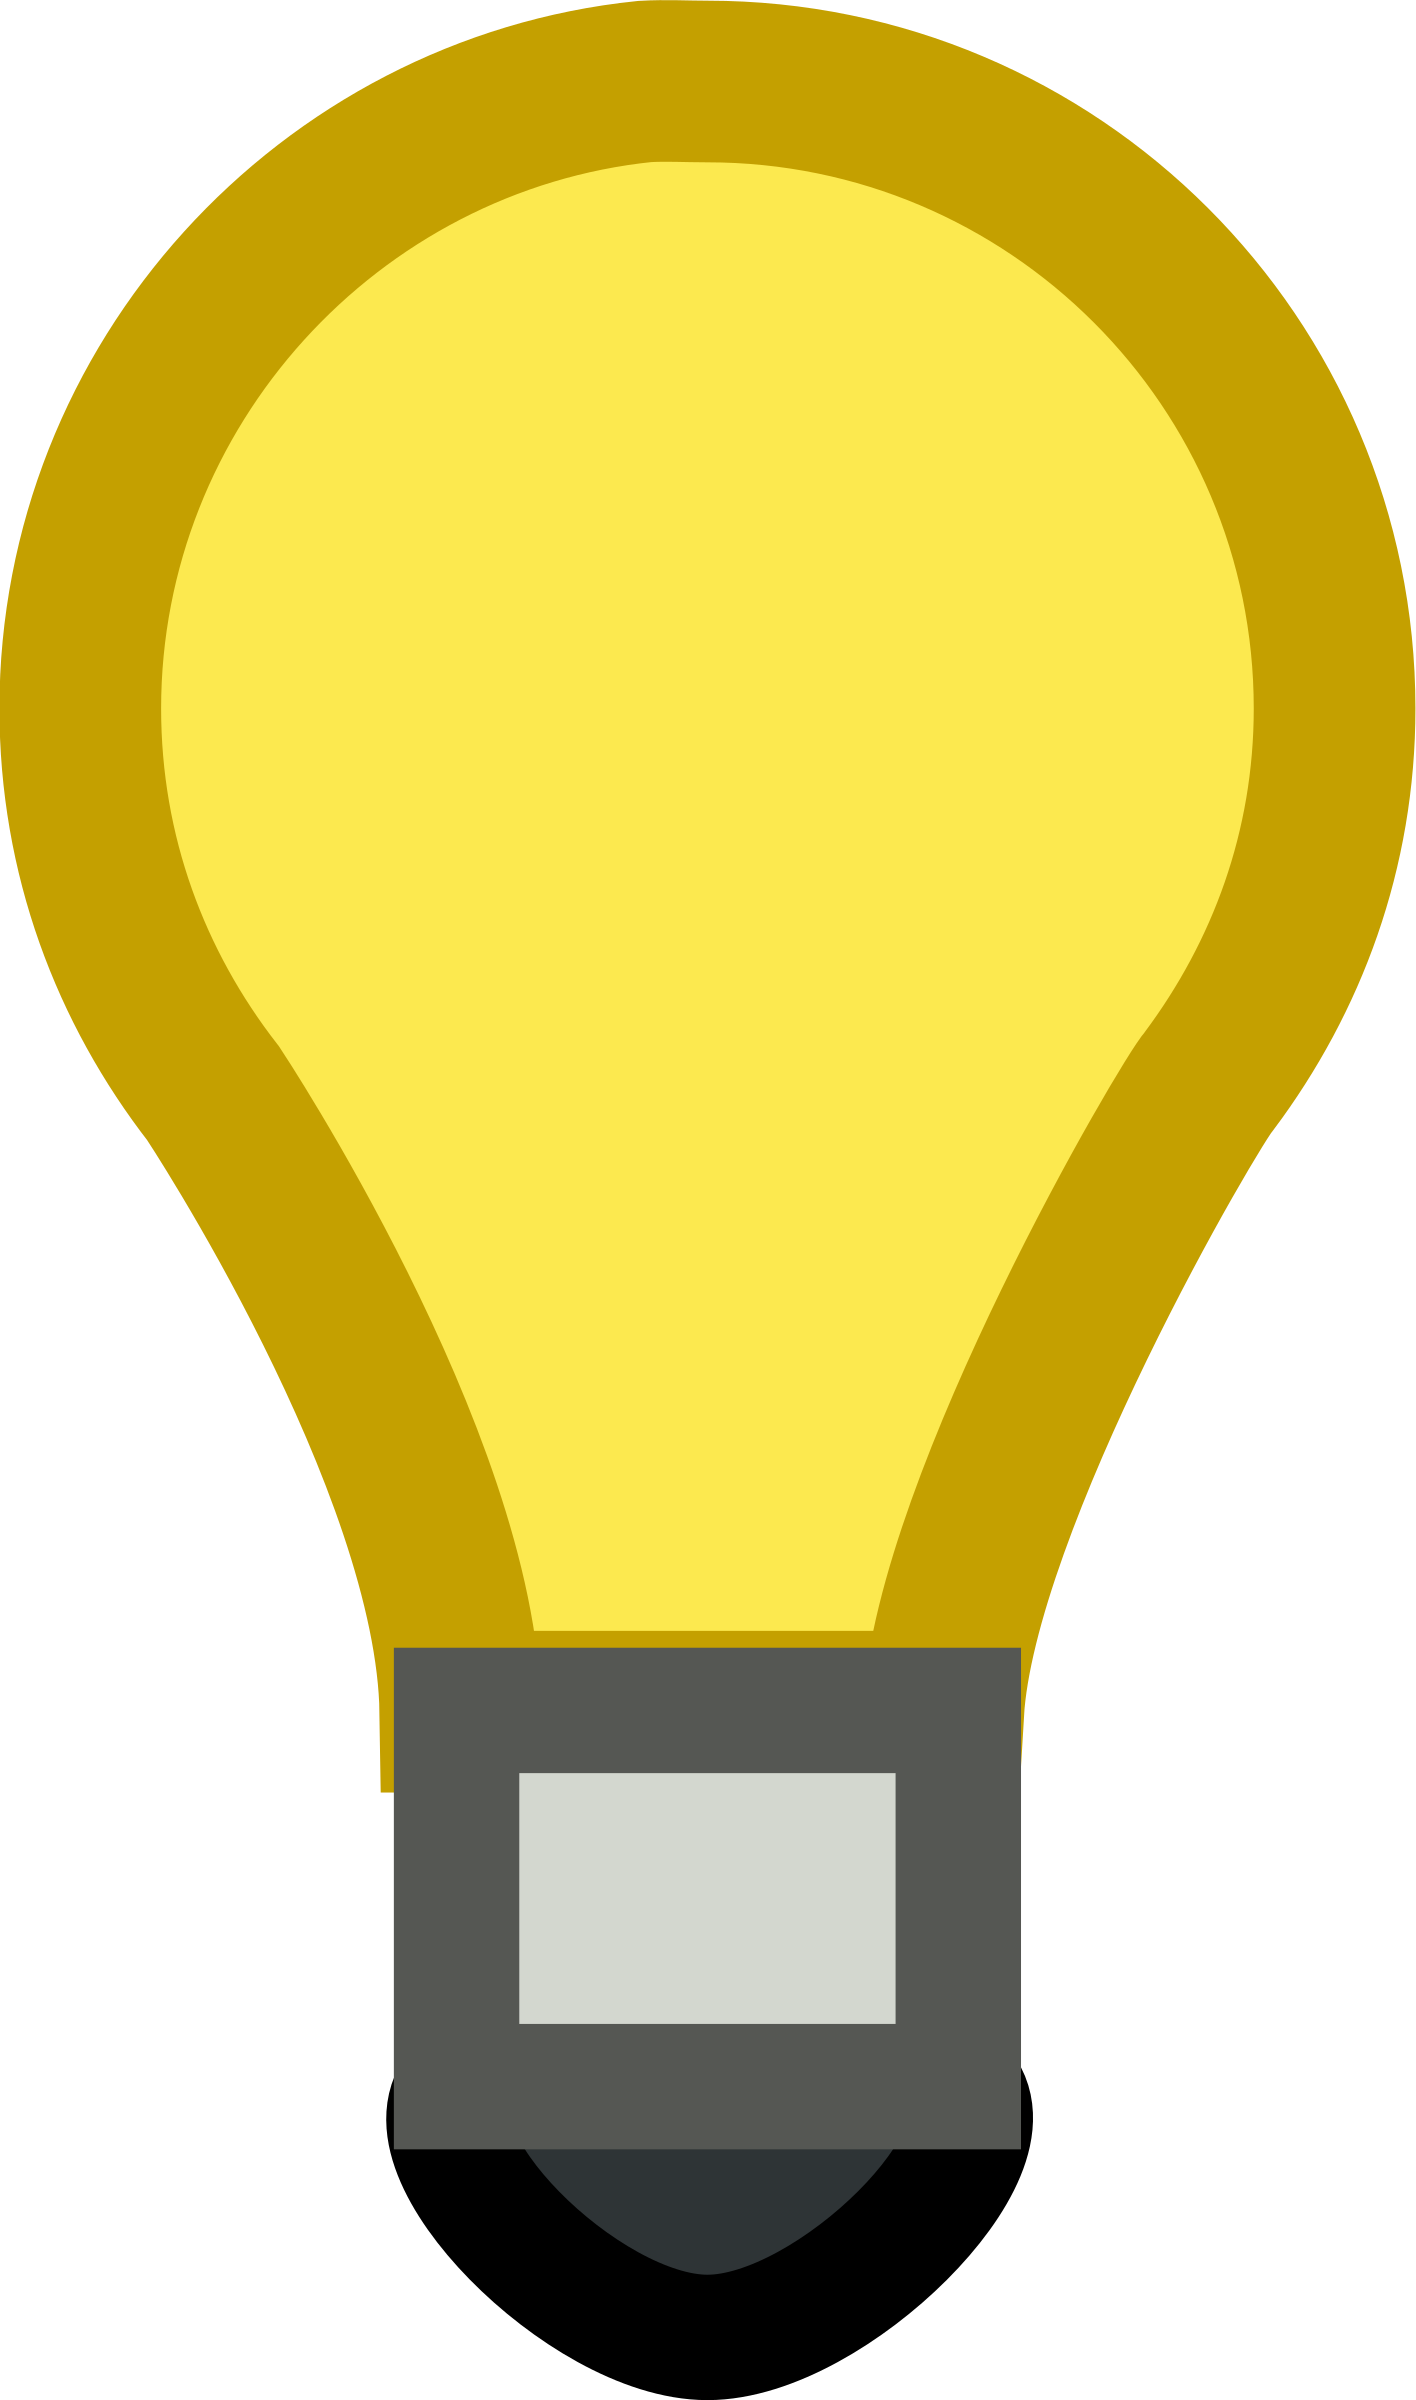 Clipart - light for Lamp Animation Png  155sfw